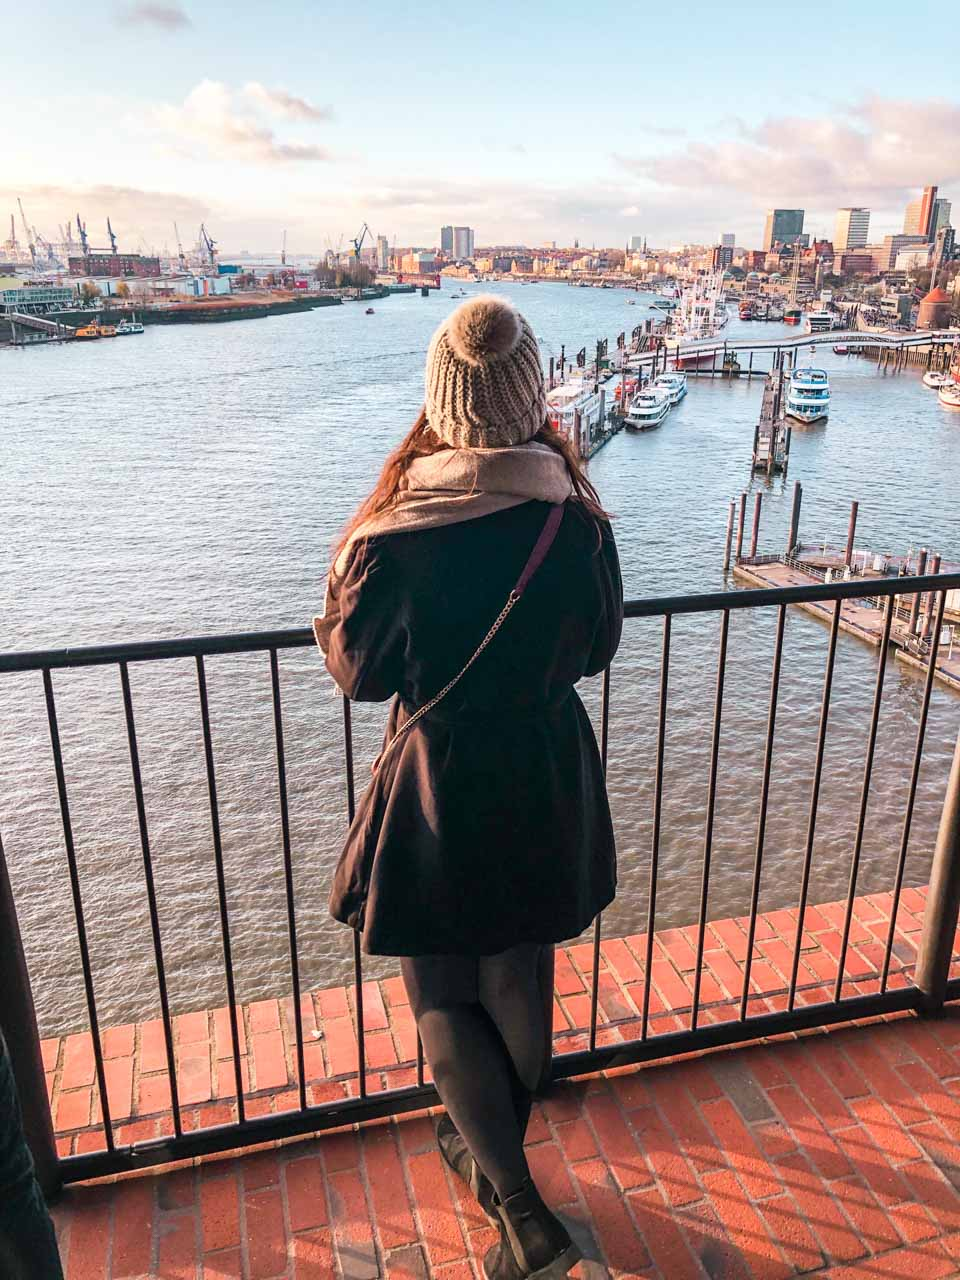 A girl in a black coat admiring the view from Elbphilharmonie Plaza in Hamburg